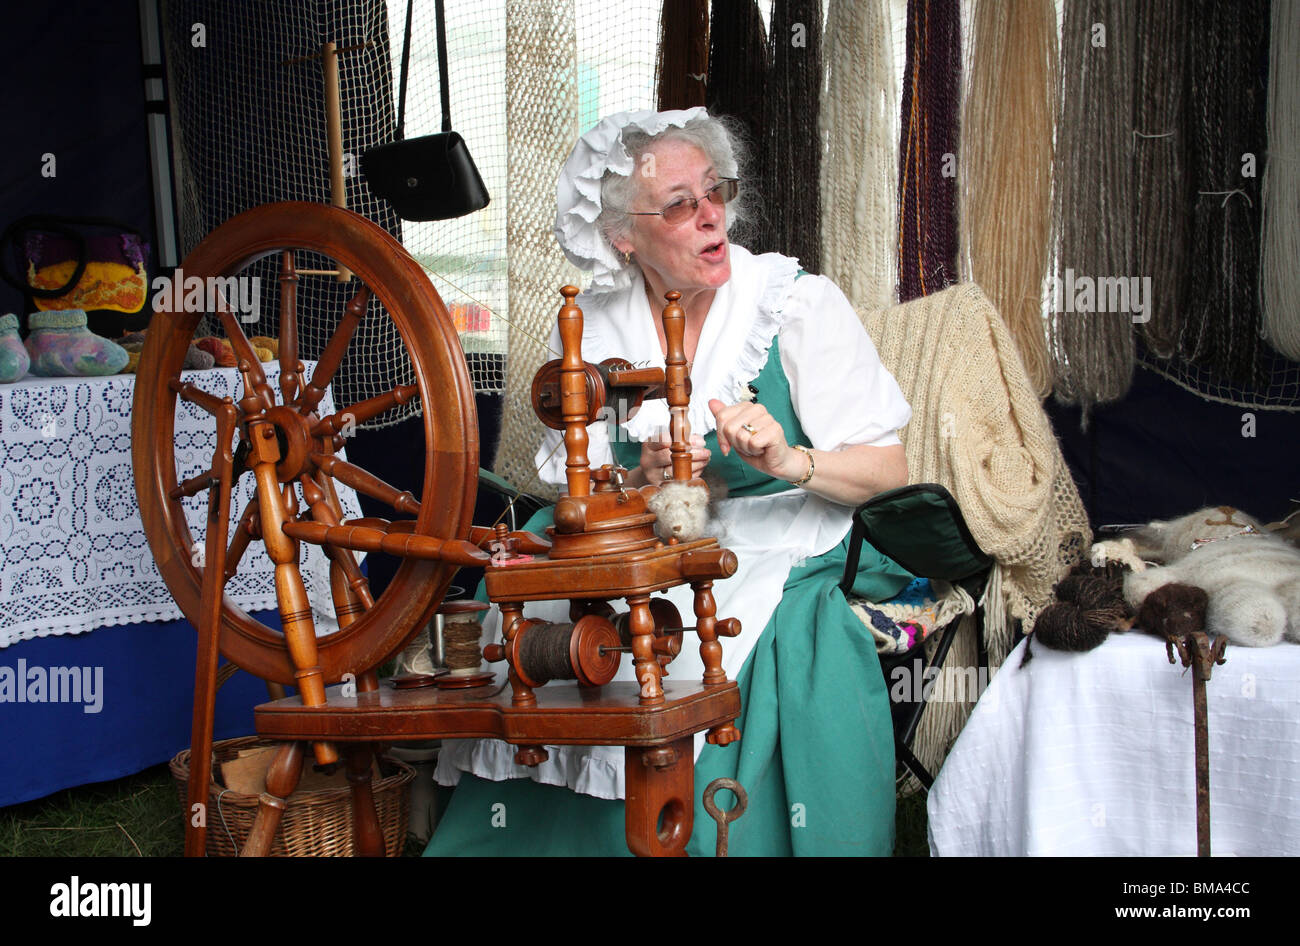 A woman in costume spinning wool at the Chatsworth Show, Derbyshire, England, U.K. - Stock Image